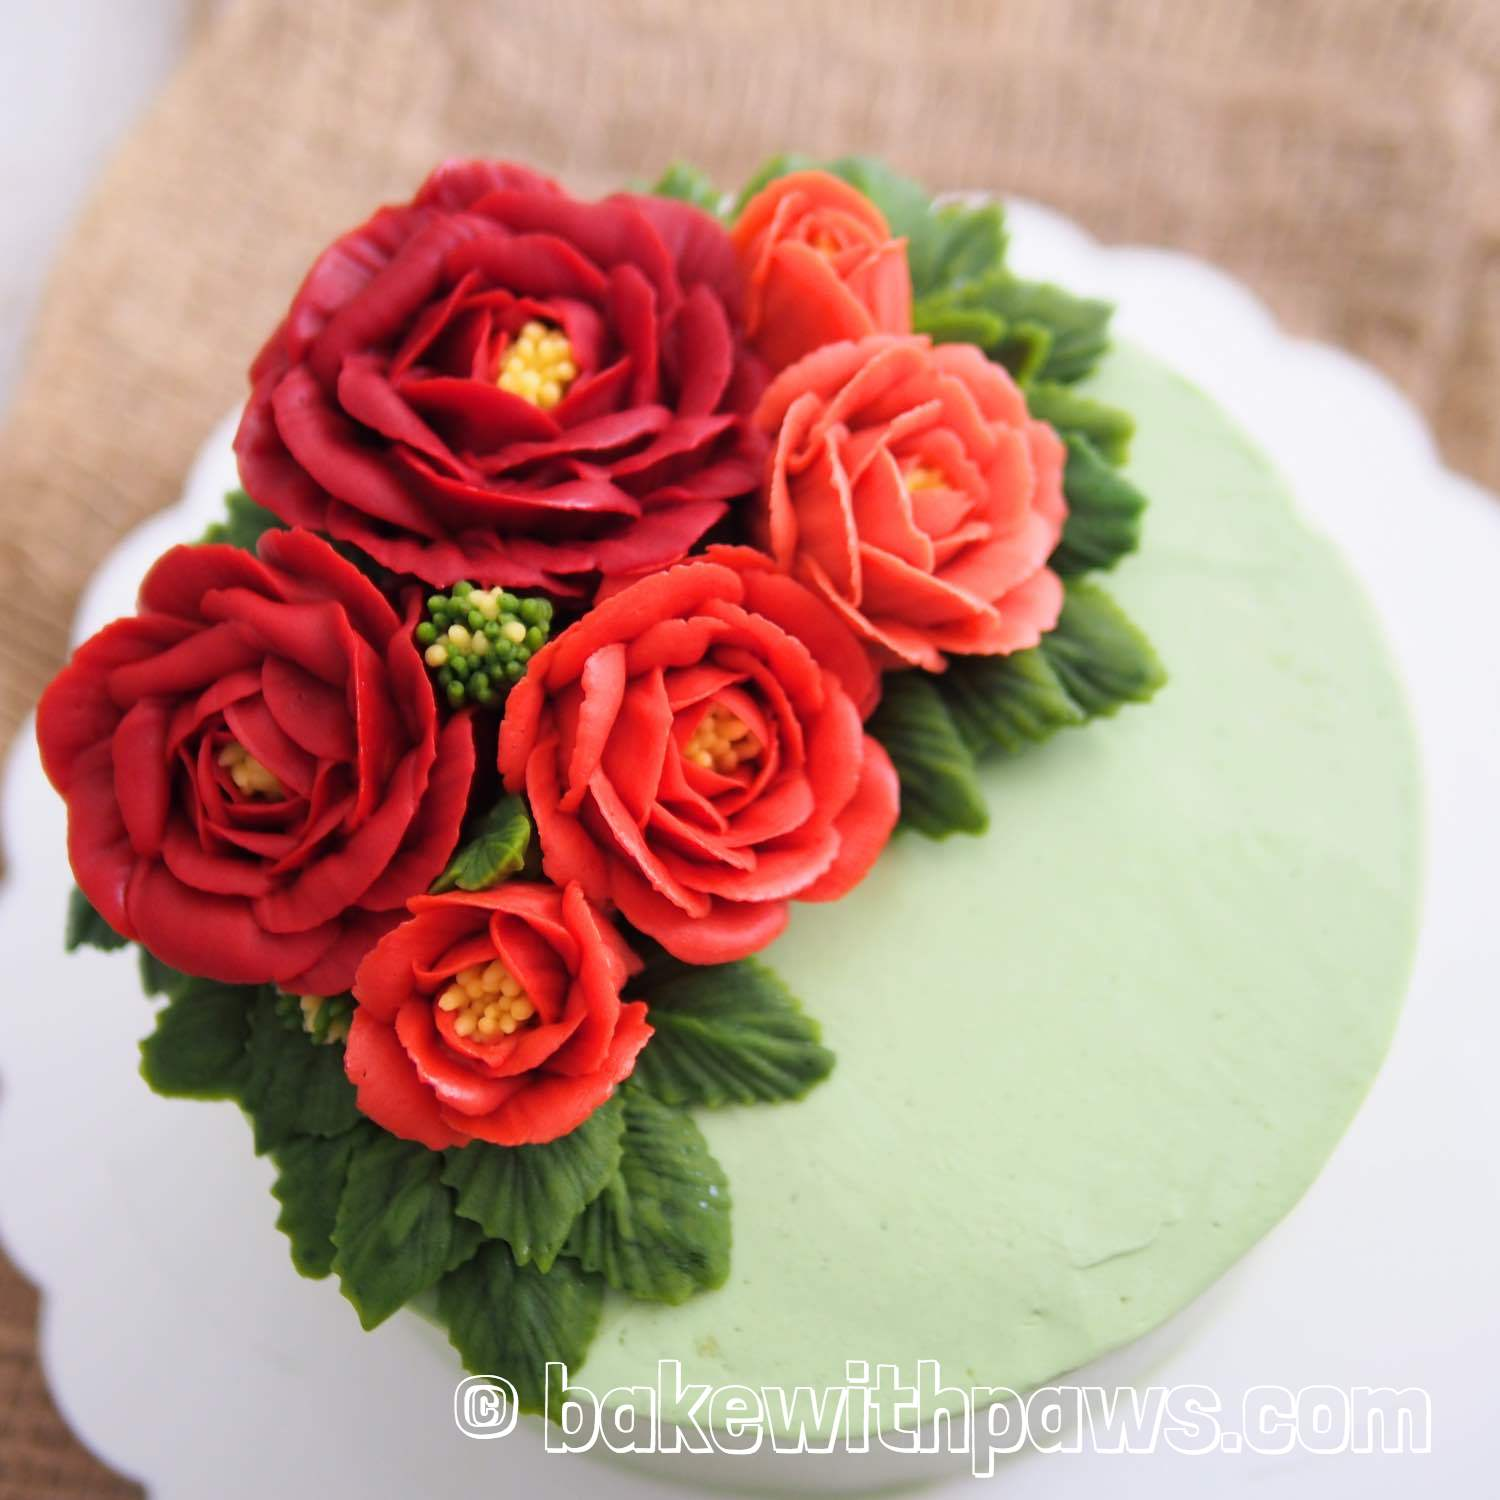 Korean Style Buttercream Flowers Cake 31 Bake With Paws